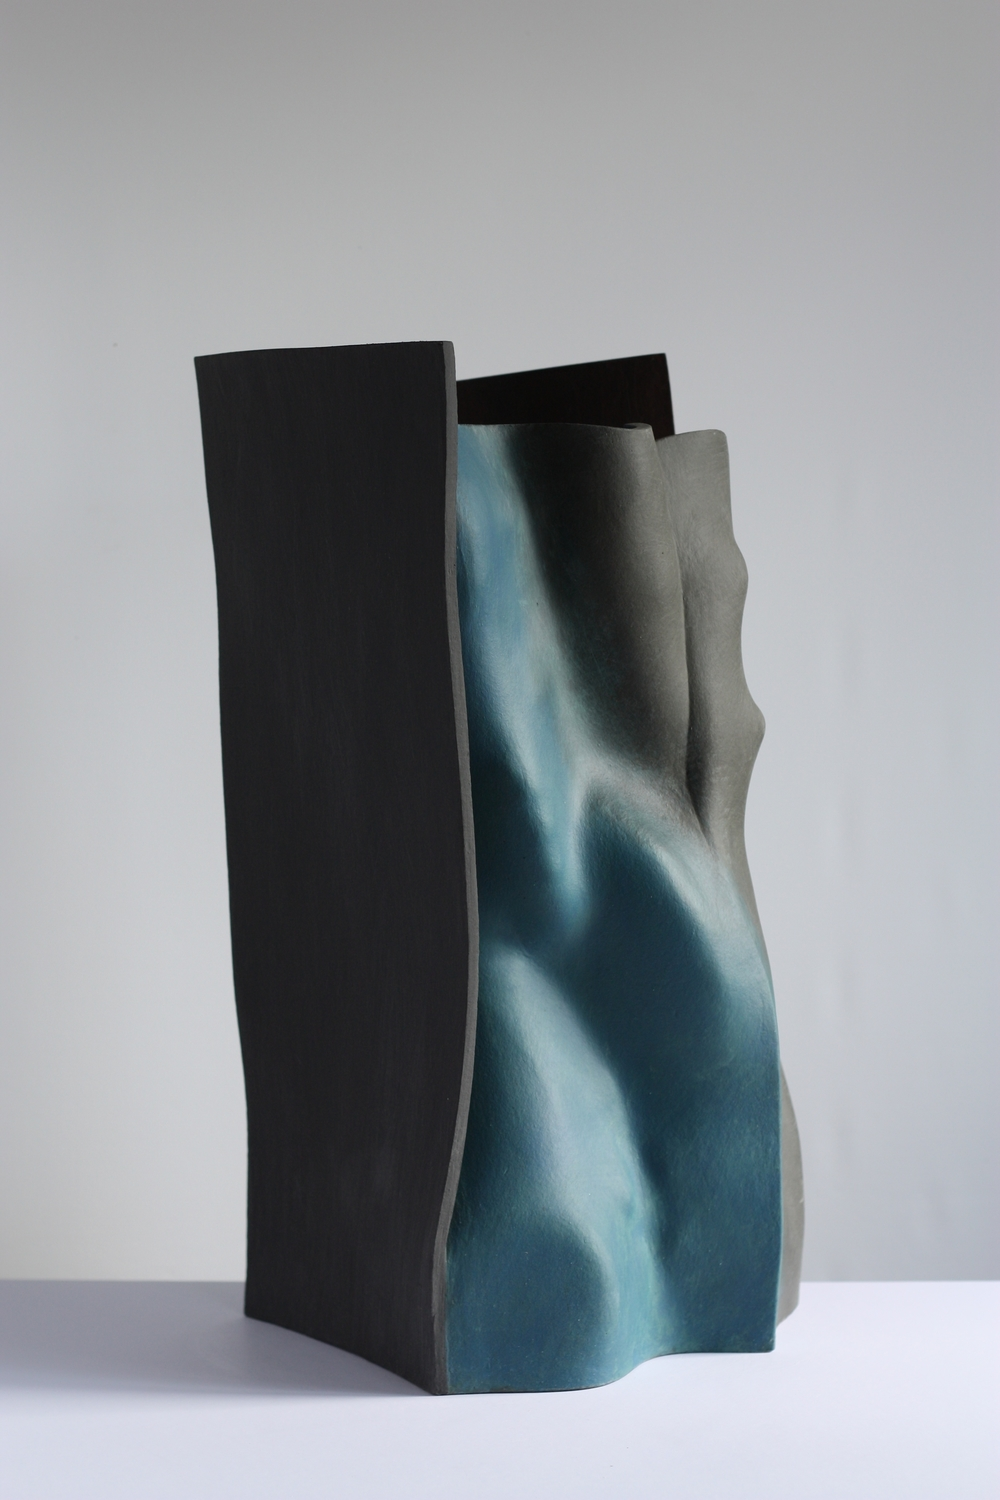 Falling into place, 2014, 56cm high